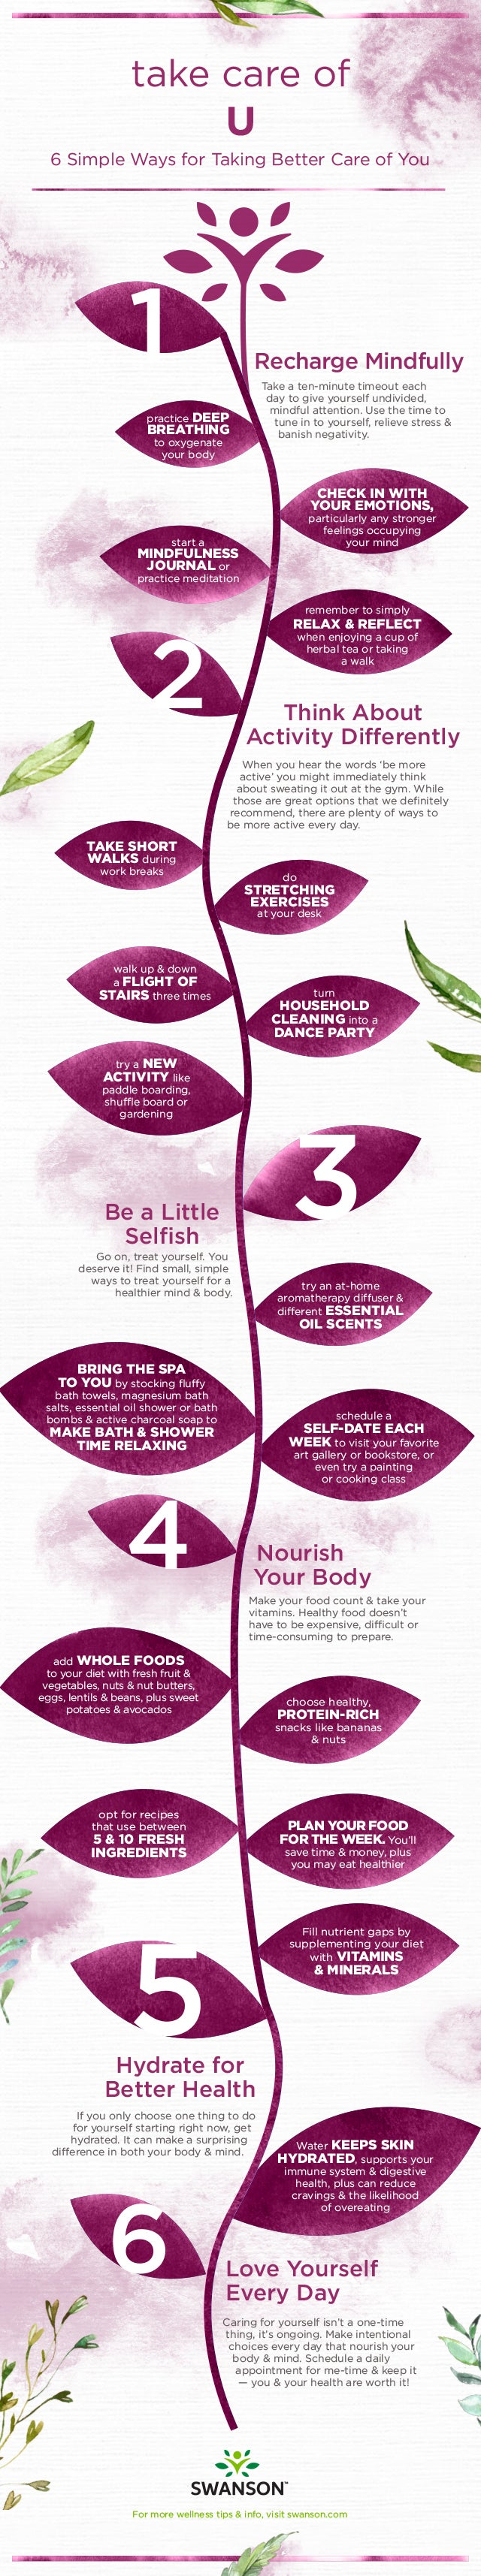 Ways to Take Care of You - infographic with self-care tips